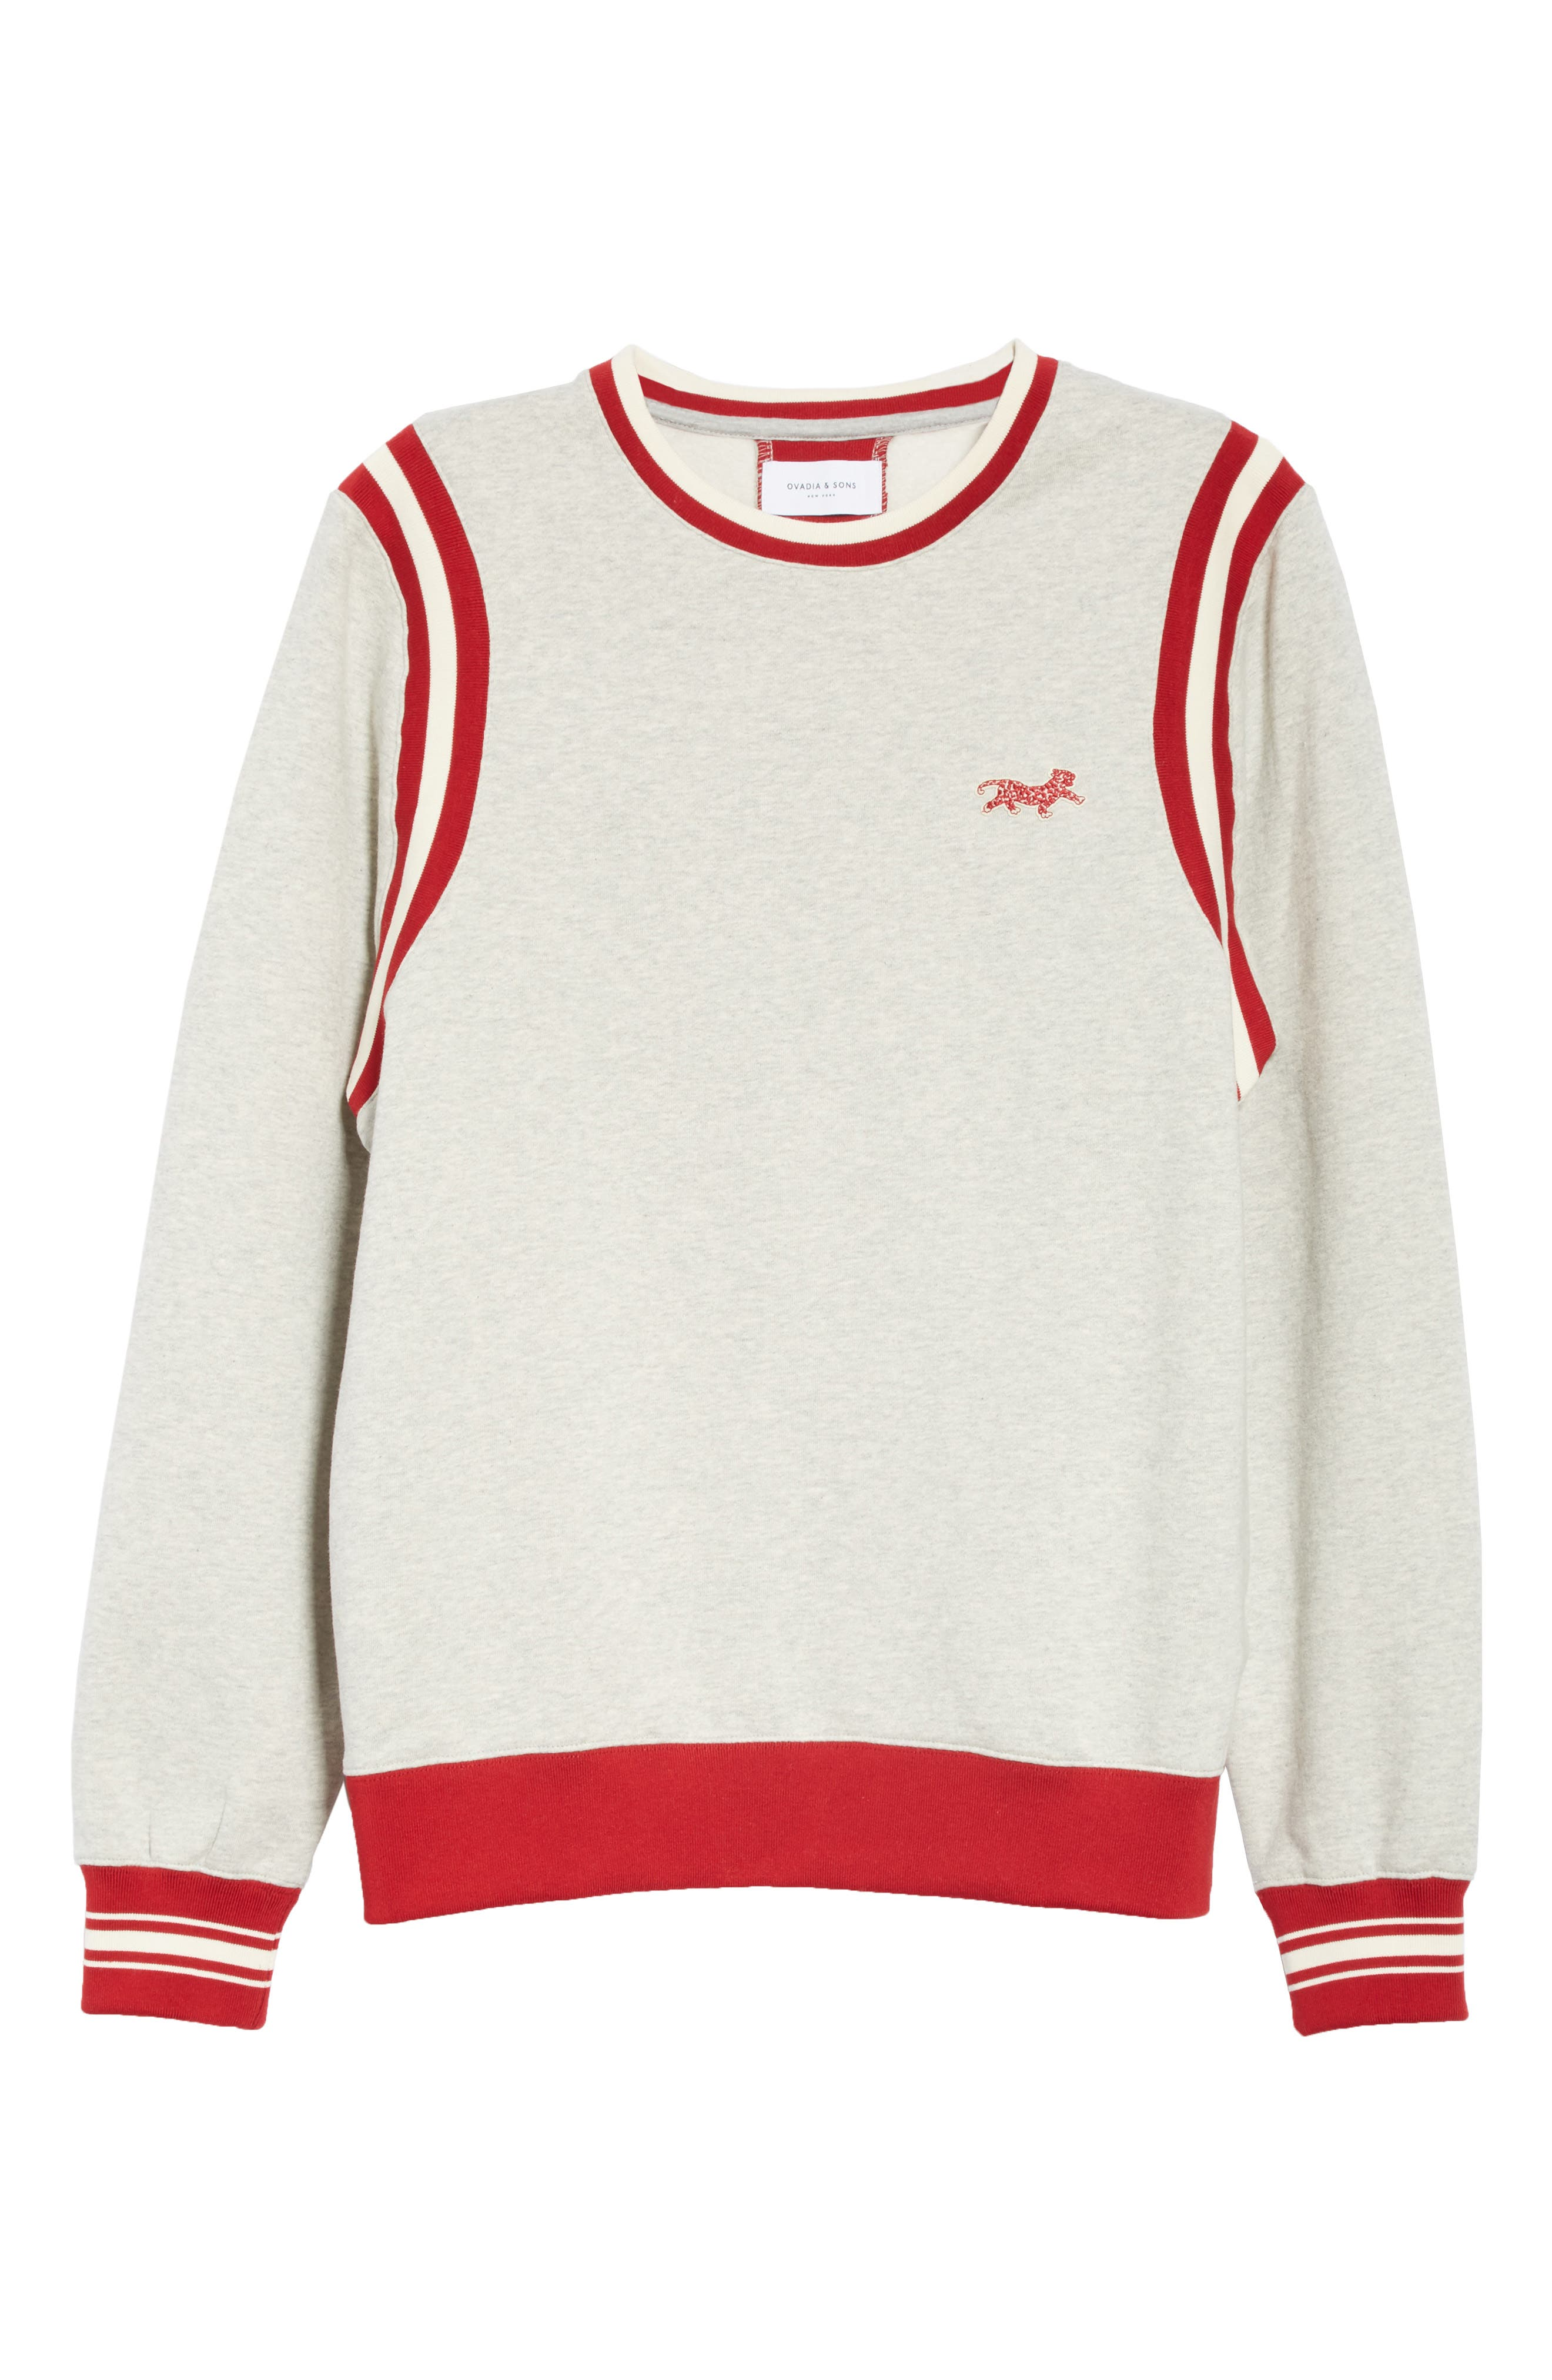 OVADIA & SONS, Varsity Sweatshirt, Alternate thumbnail 6, color, HEATHER GREY/RED